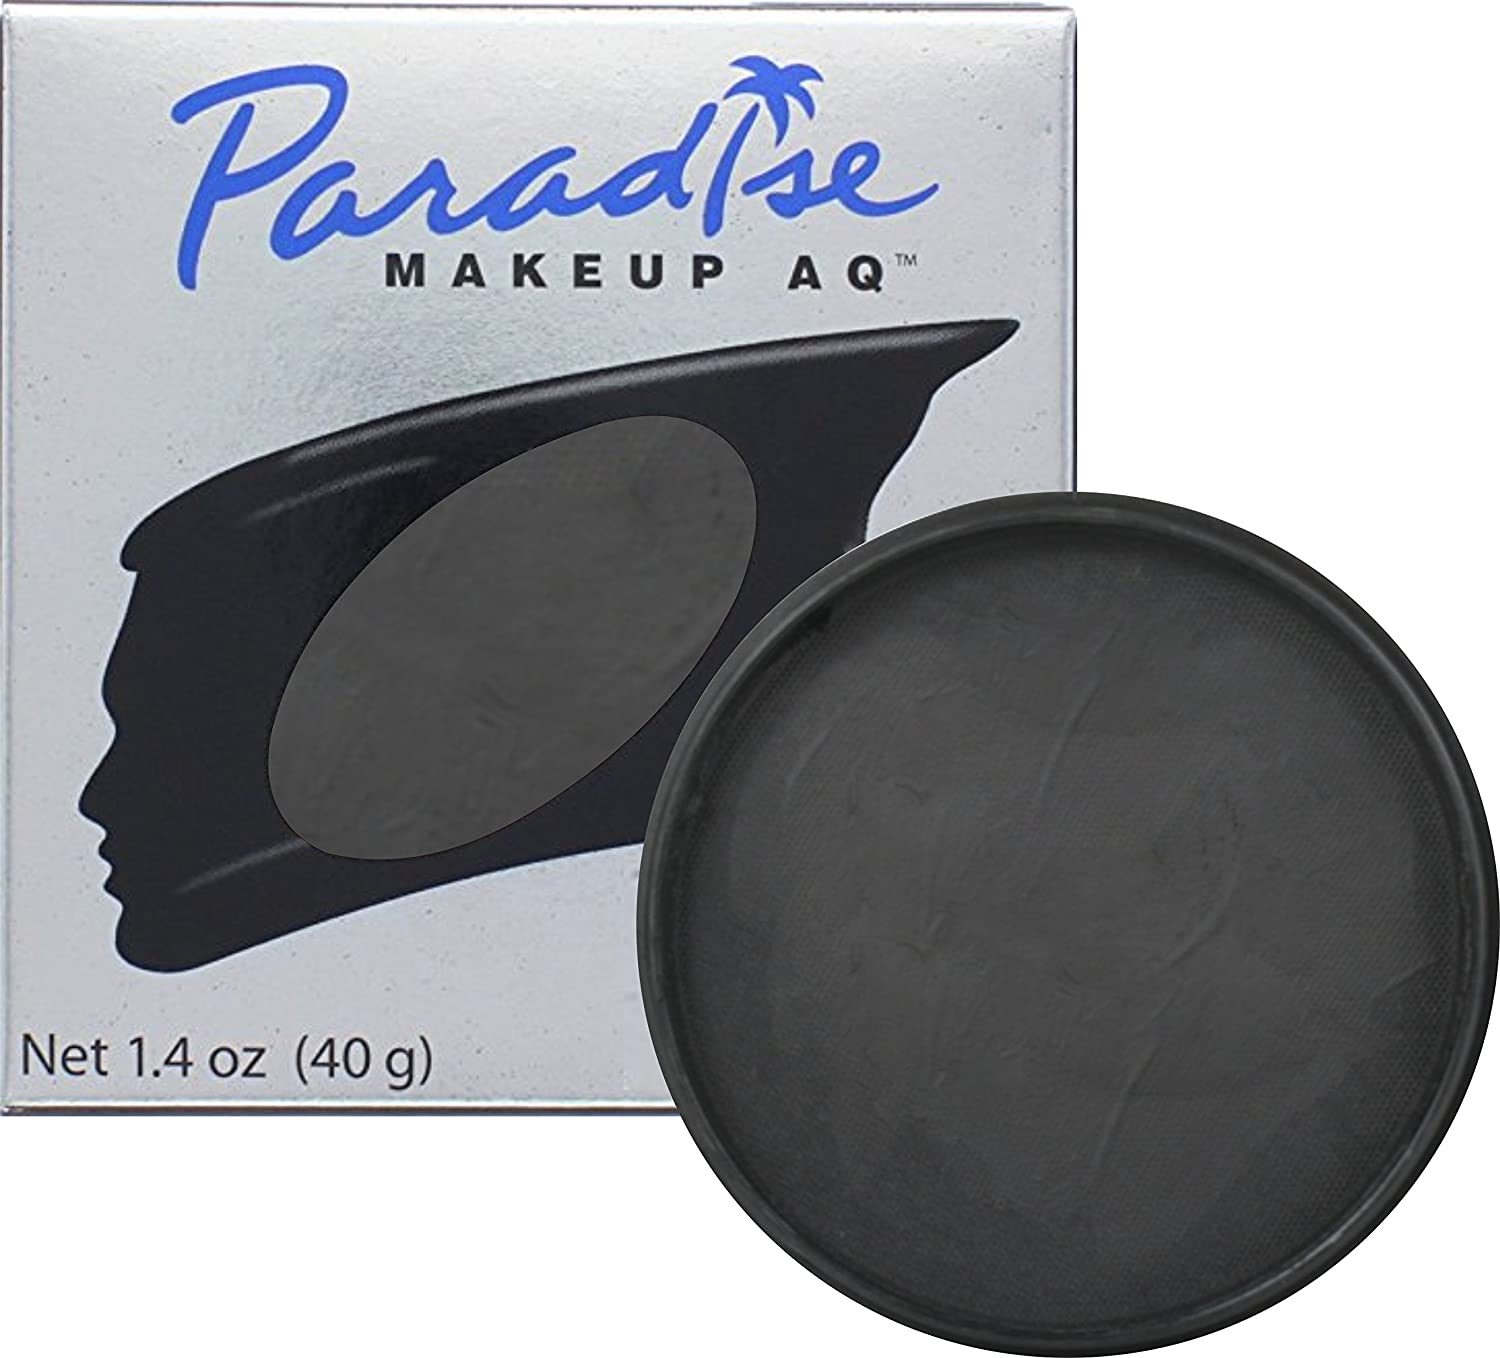 Mehron Makeup Paradise AQ Face & Body Paint, BLACK